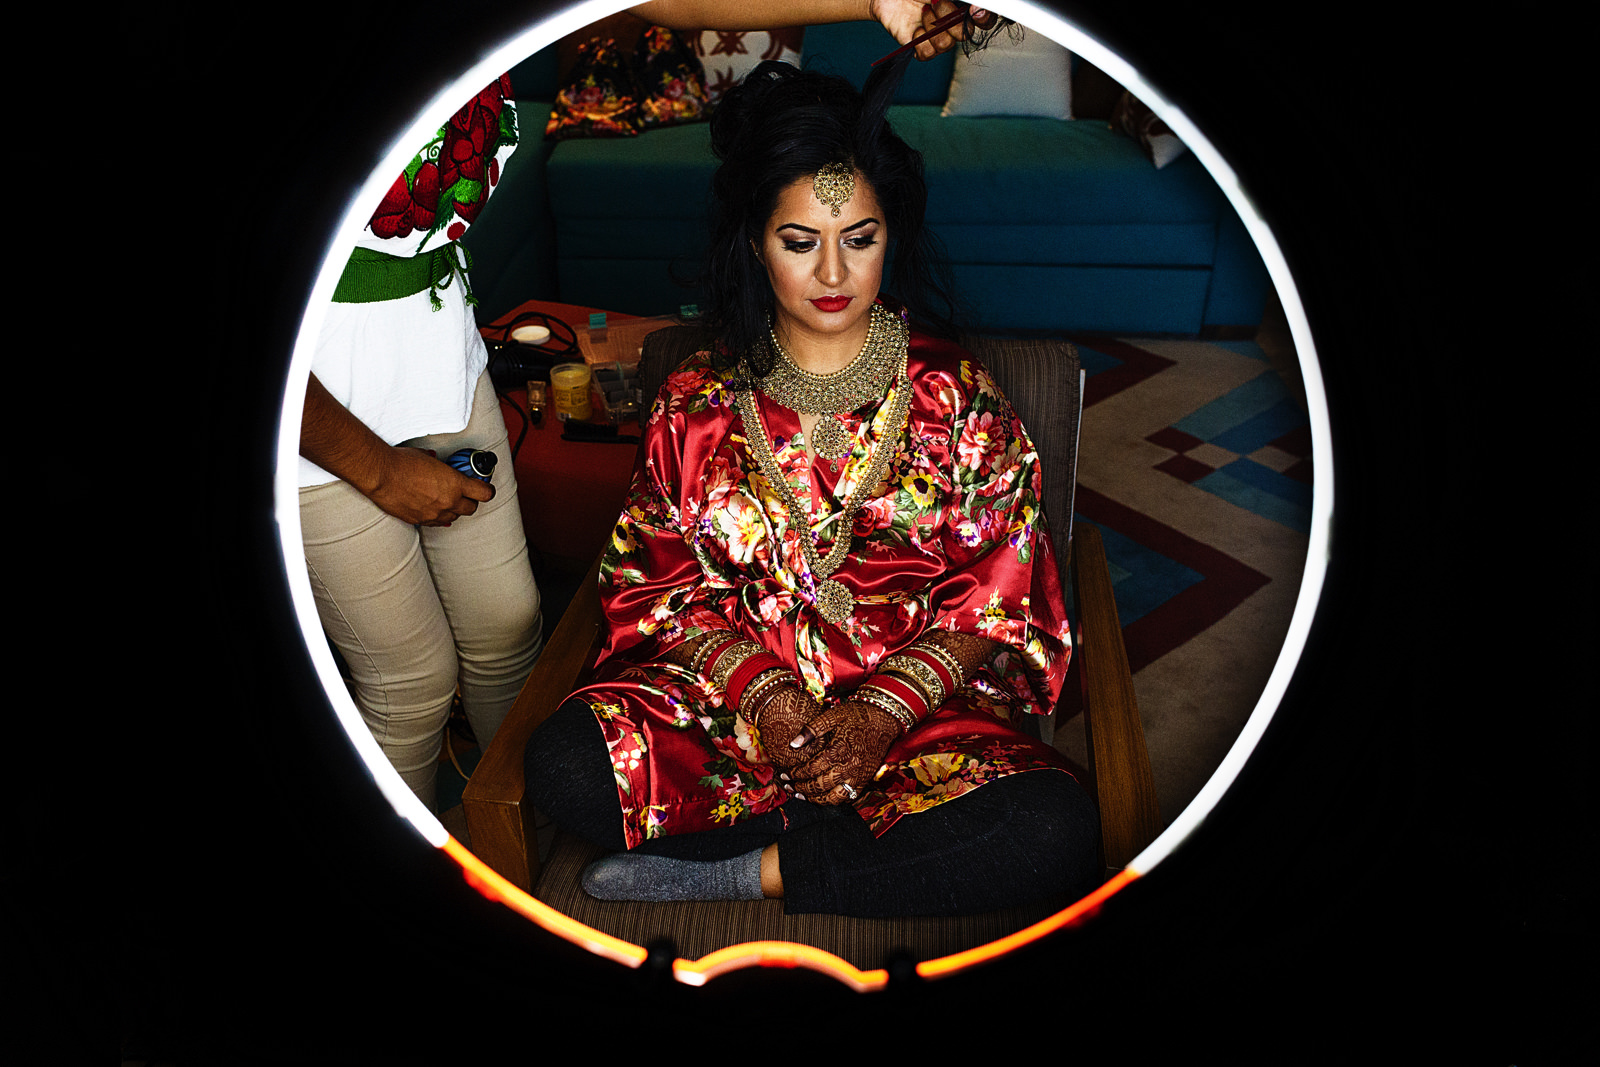 Hindu bride getting her hair done seen through a ring light